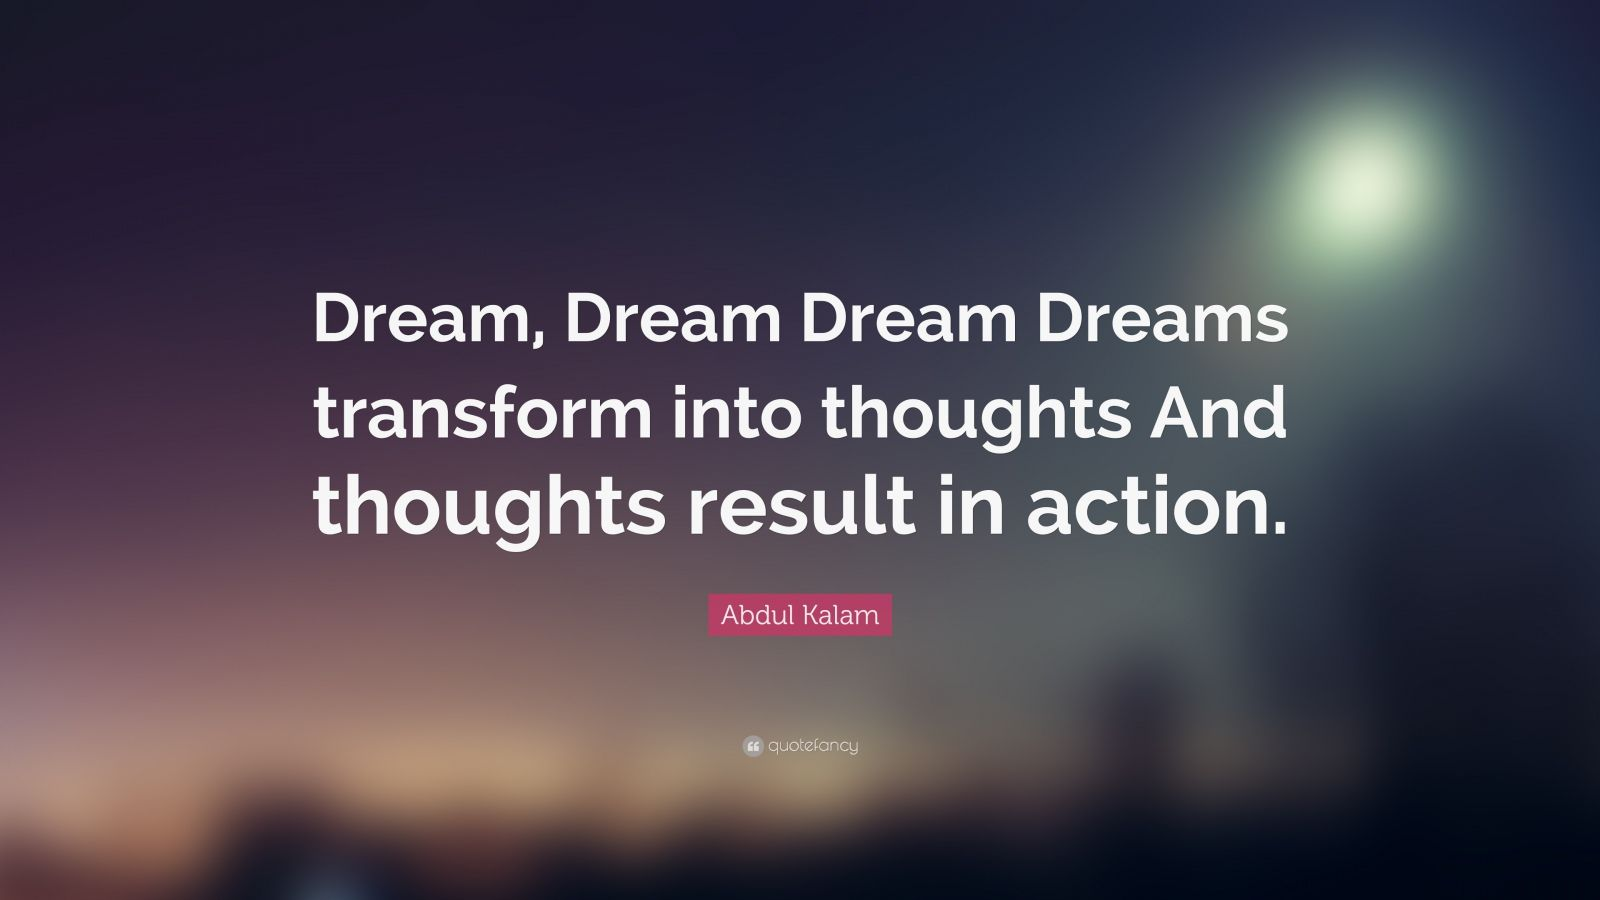 """Abdul Kalam Quote: """"Dream, Dream Dream Dreams transform into thoughts And thoughts result in action."""""""